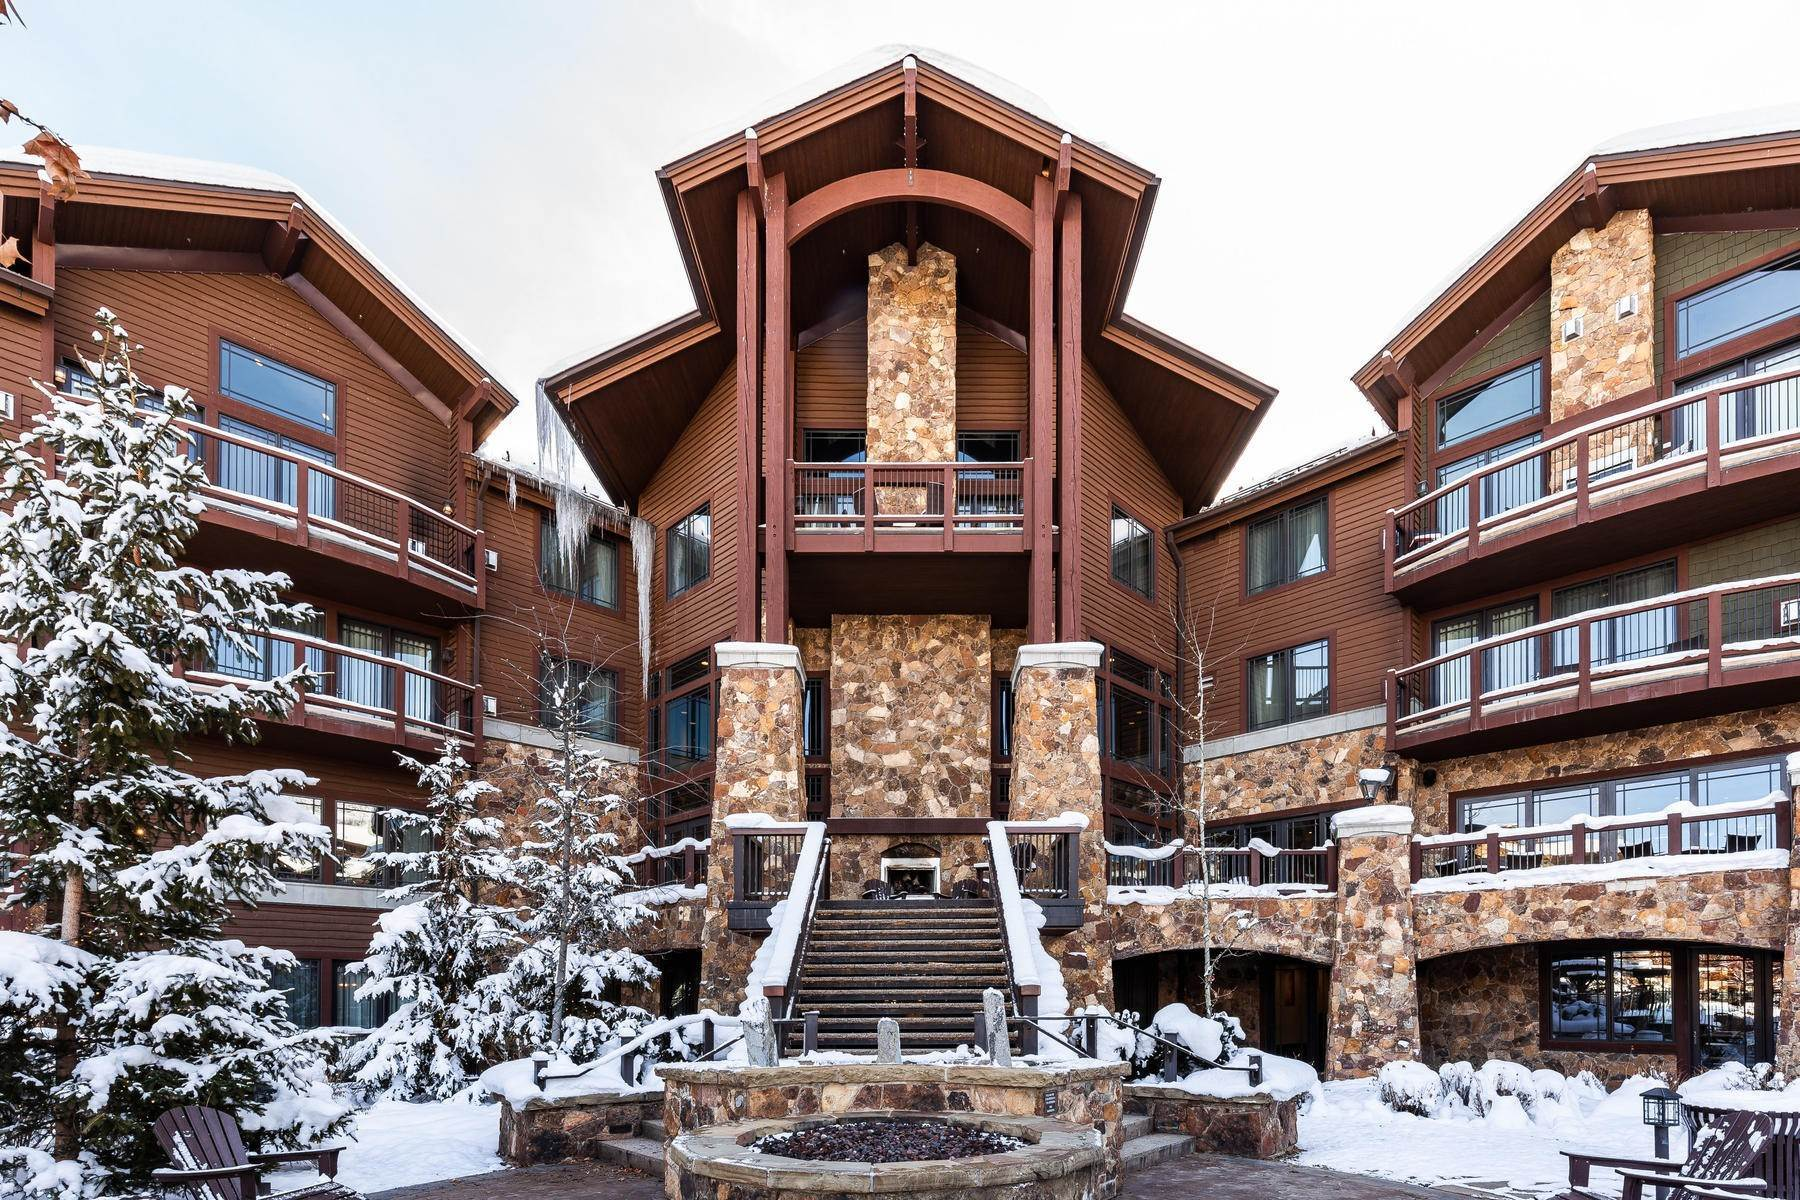 2. Condominiums at 2100 W Frostwood Boulevard #5172 Park City, Utah 84098 United States